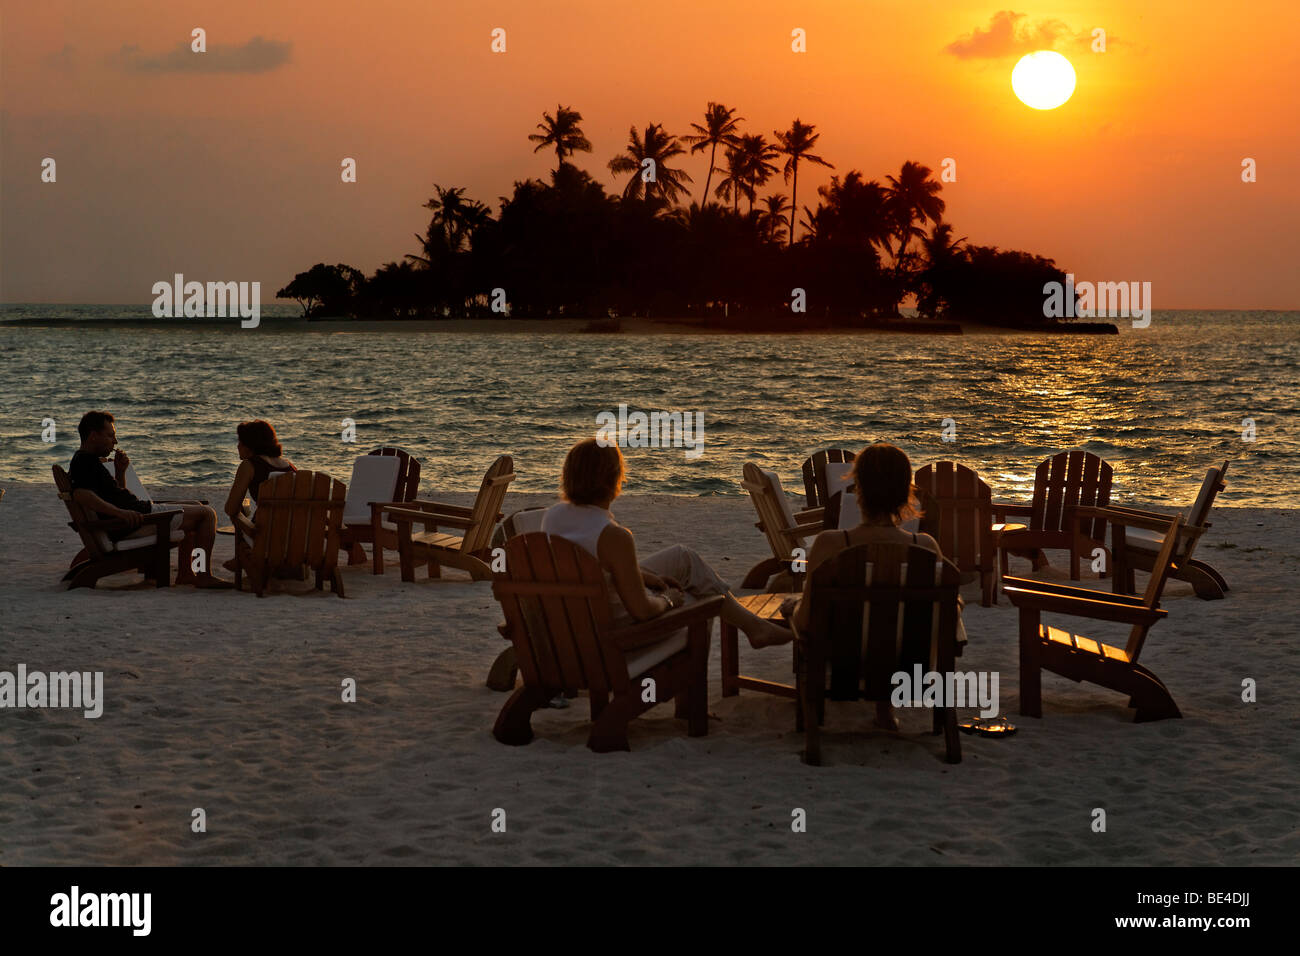 People are sitting on chairs at the beach with long drinks in front of a golden sundown, Maldive island, Rihiveli, - Stock Image